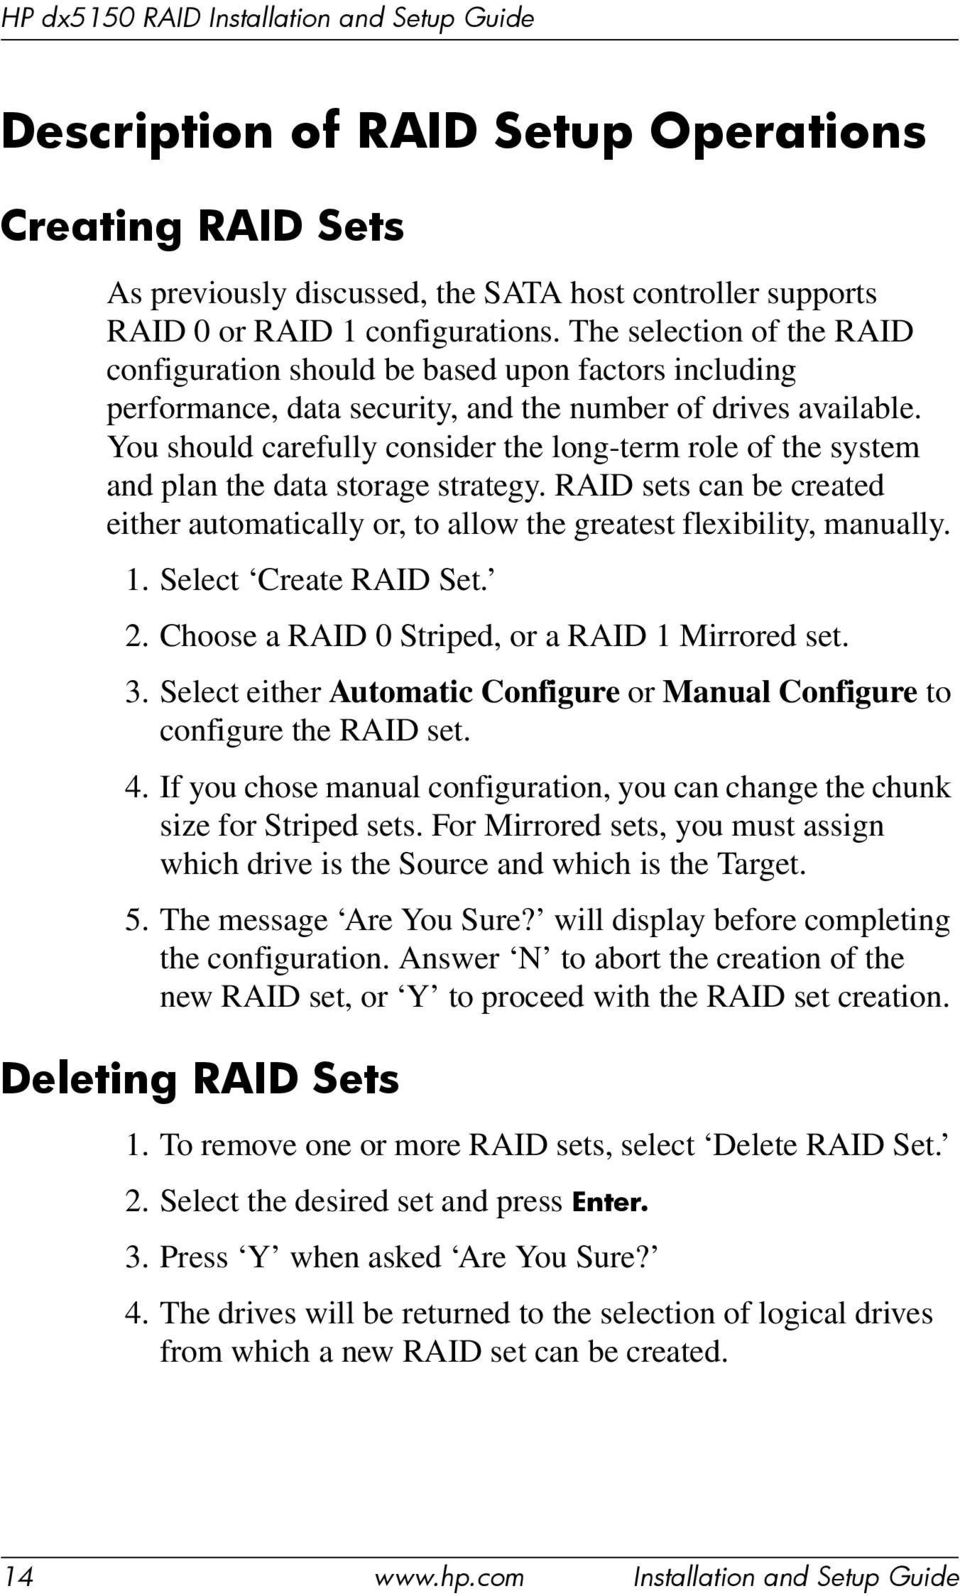 You should carefully consider the long-term role of the system and plan the data storage strategy. RAID sets can be created either automatically or, to allow the greatest flexibility, manually. 1.